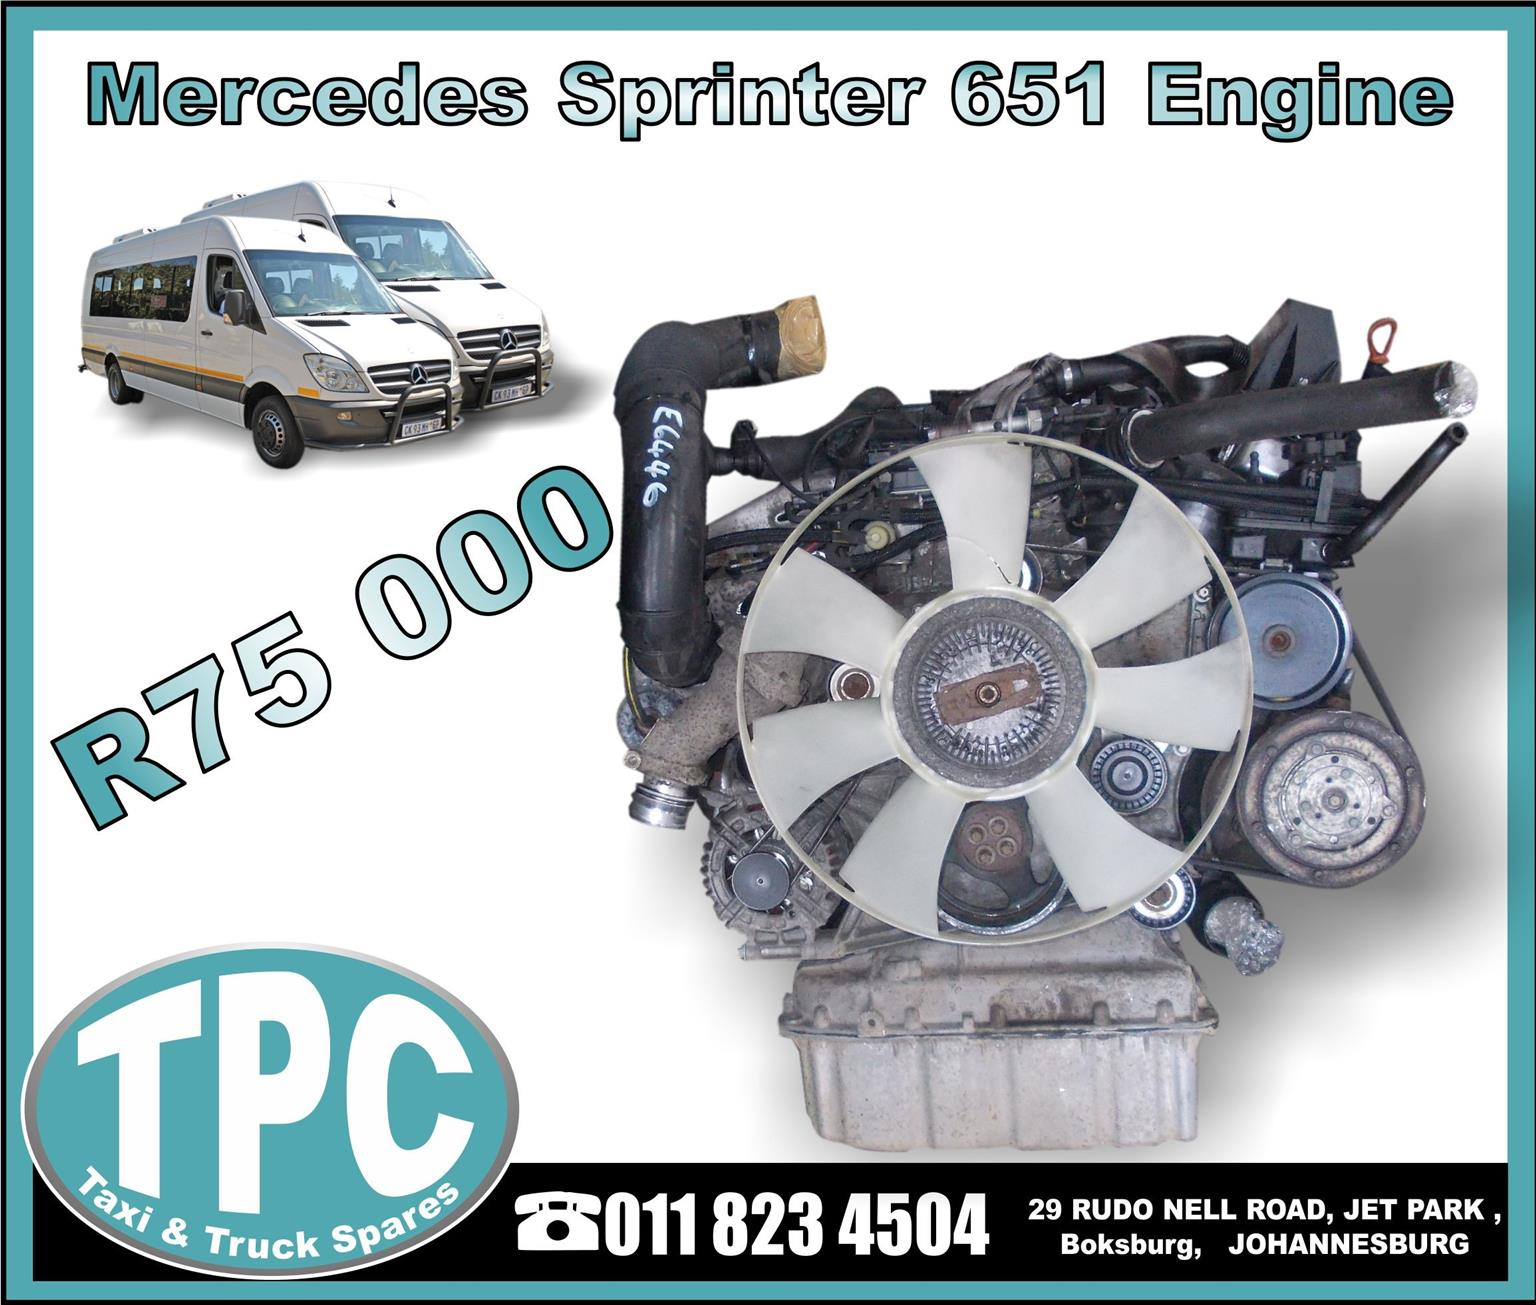 Mercedes Sprinter 651 Engine - USED - New And Used Replacement Parts.